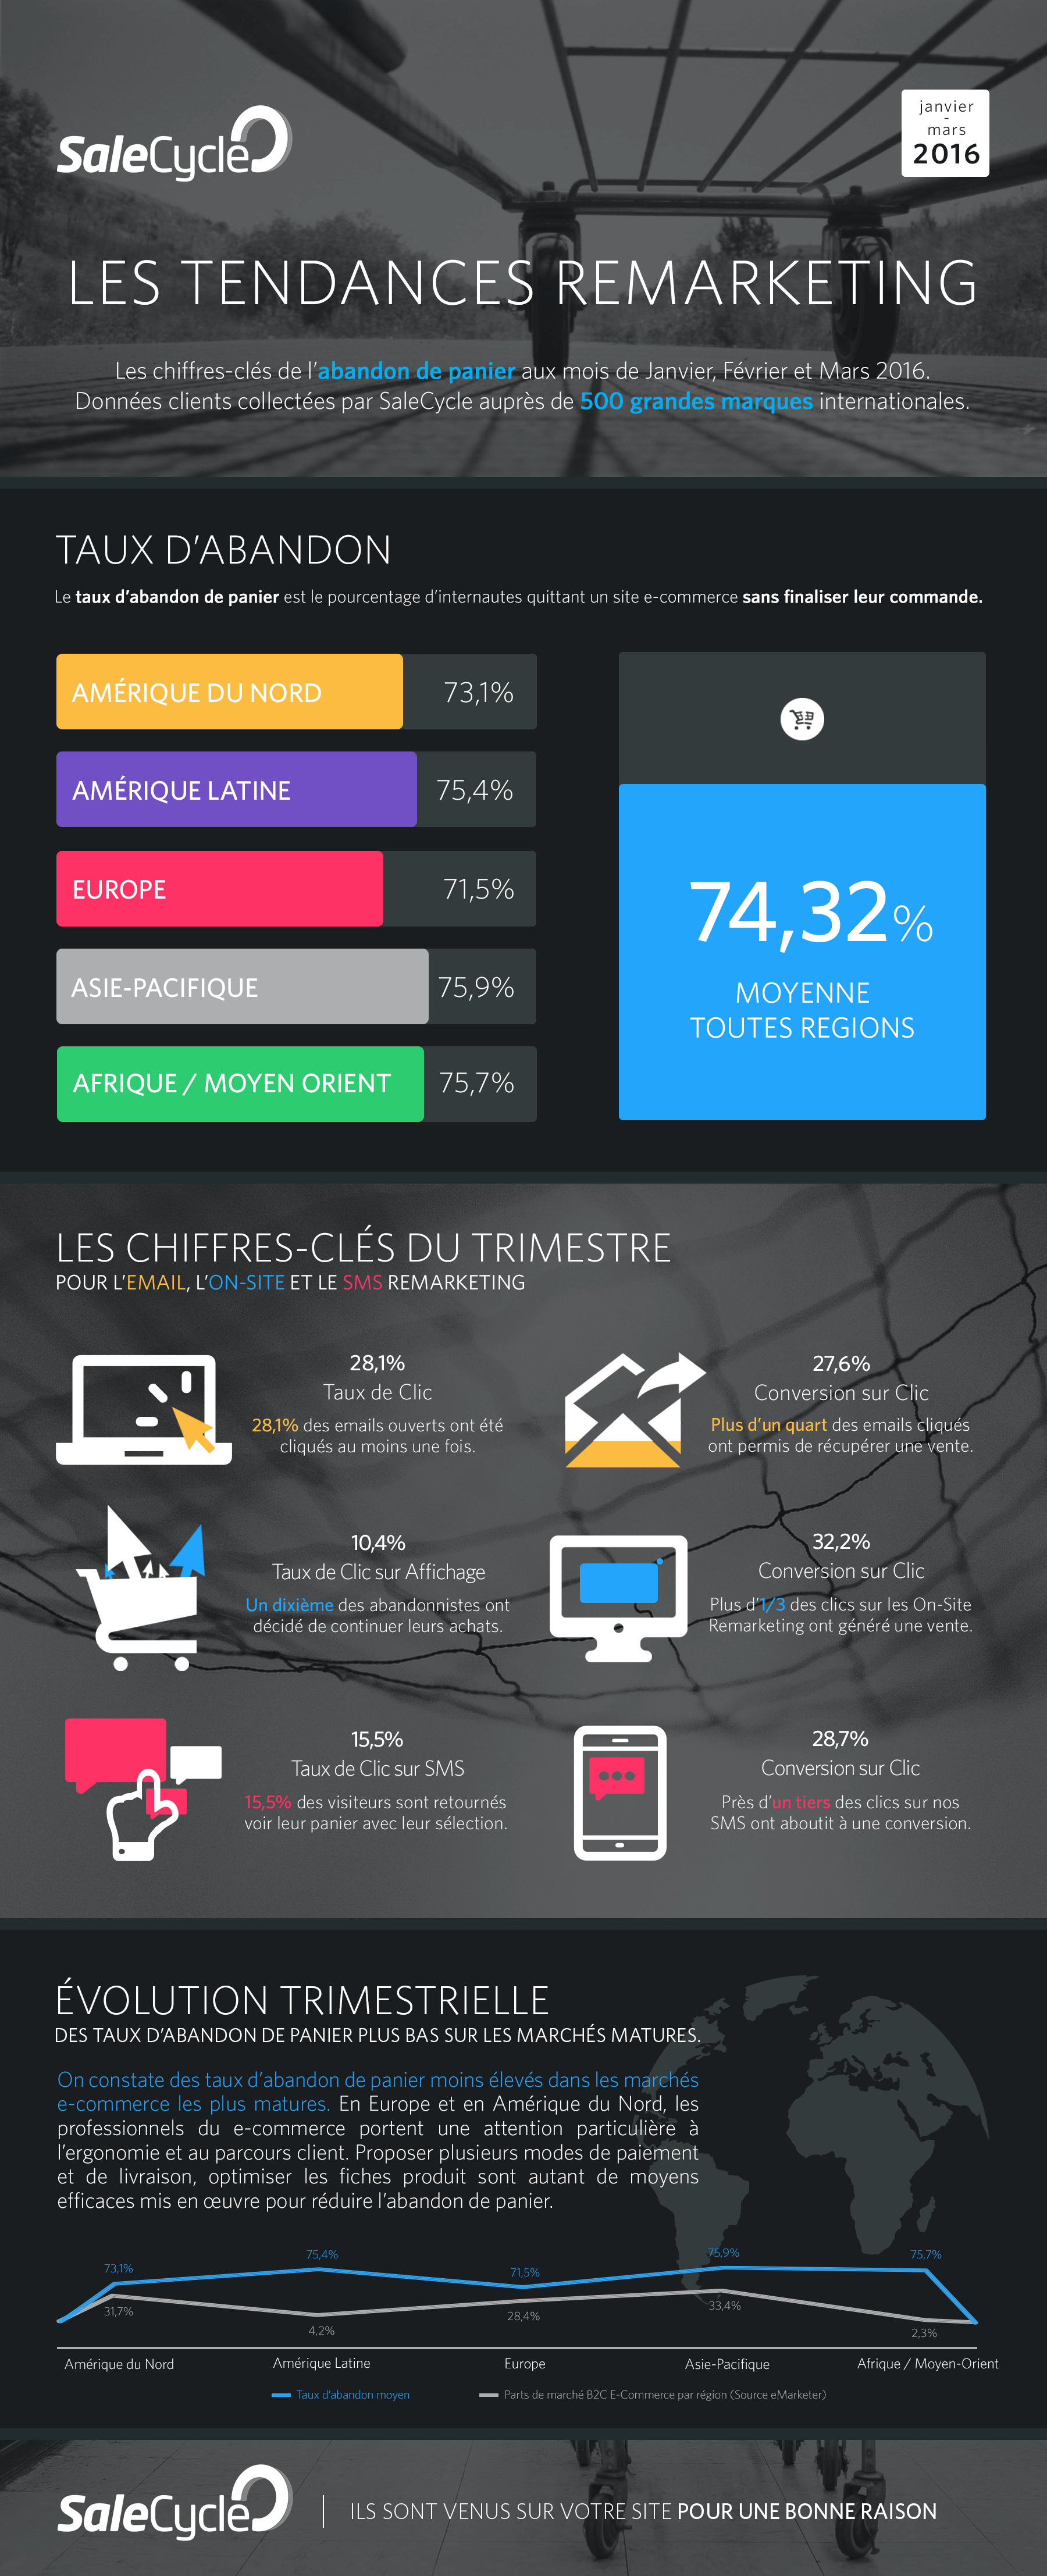 Tendances Remarketing Q1 2016